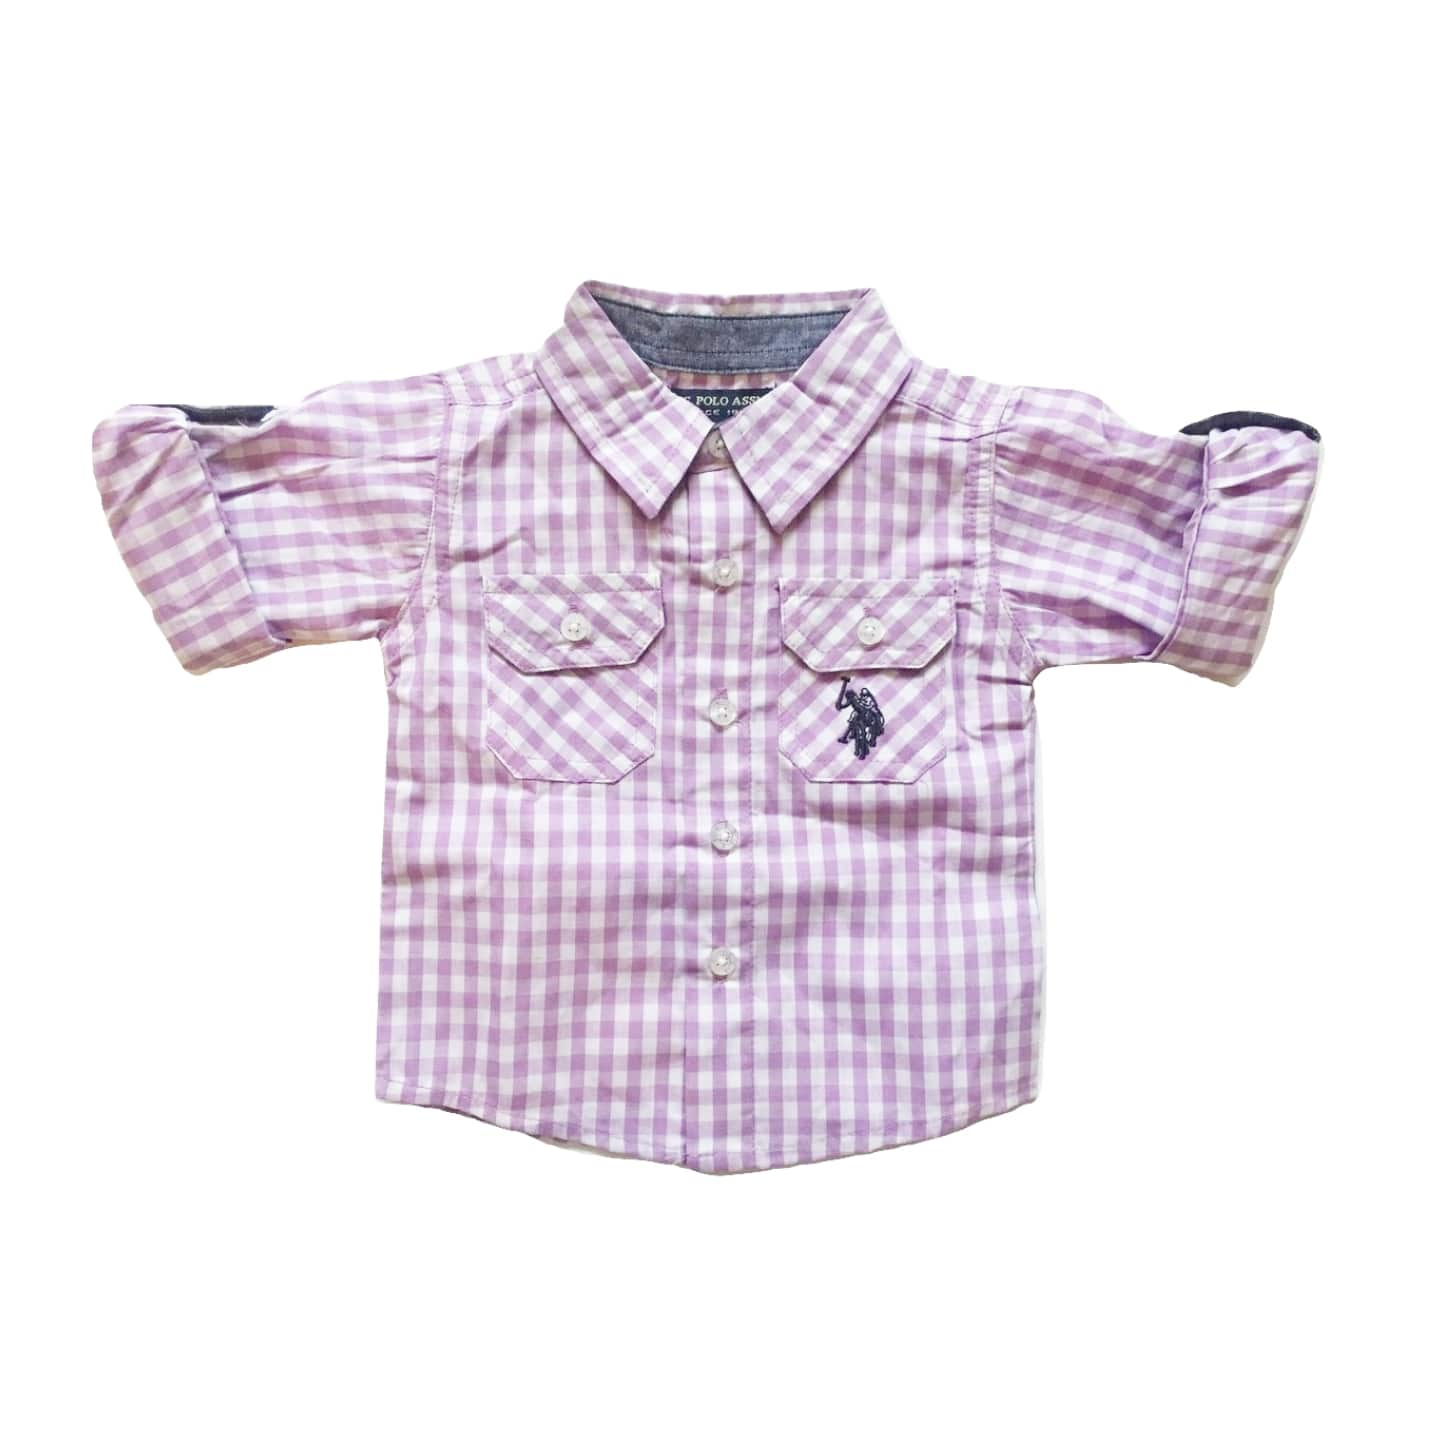 US Polo Assn Purple Checked Short/Longsleeve fold up - Baby Boy - Stockpoint Apparel Outlet